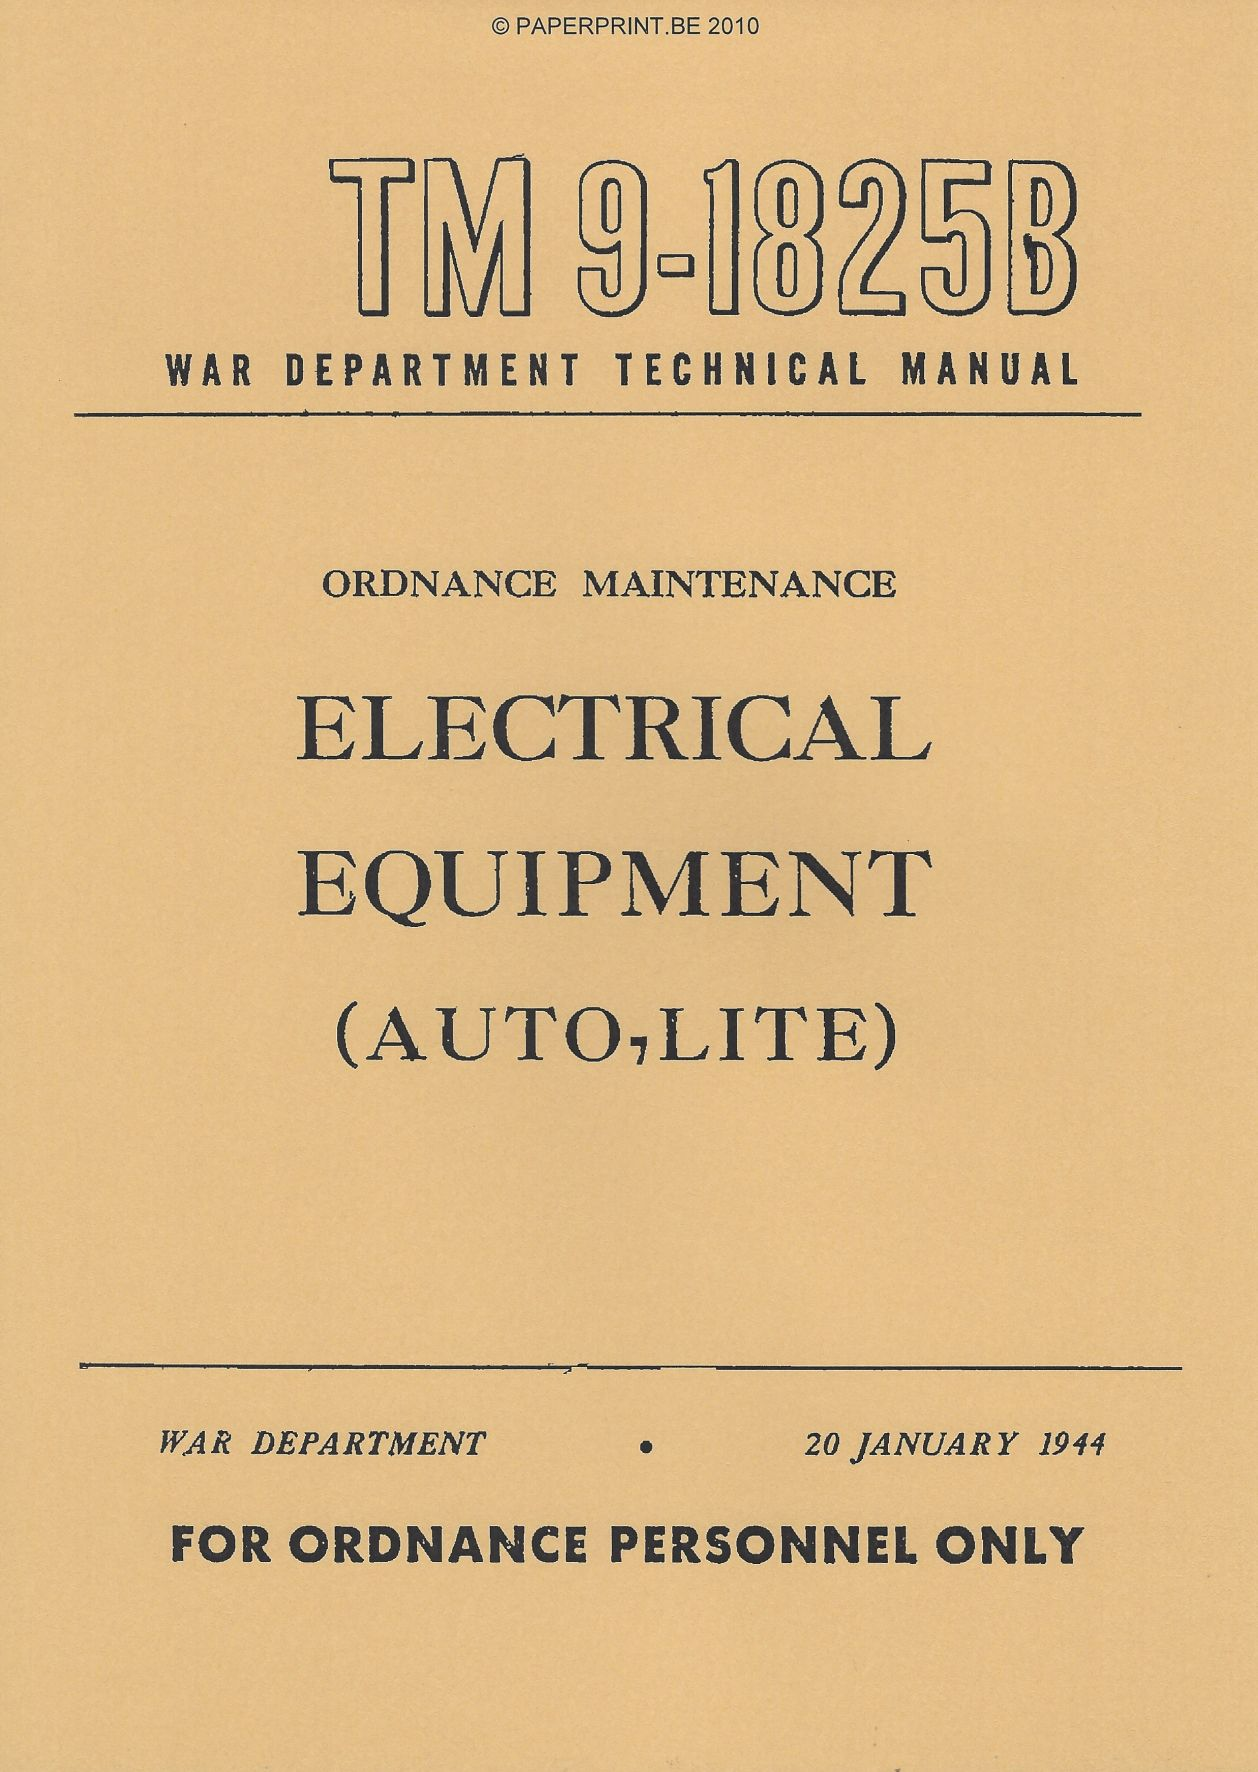 TM 9-1825B US ELECTRICAL EQUIPMENT (AUTO-LITE)